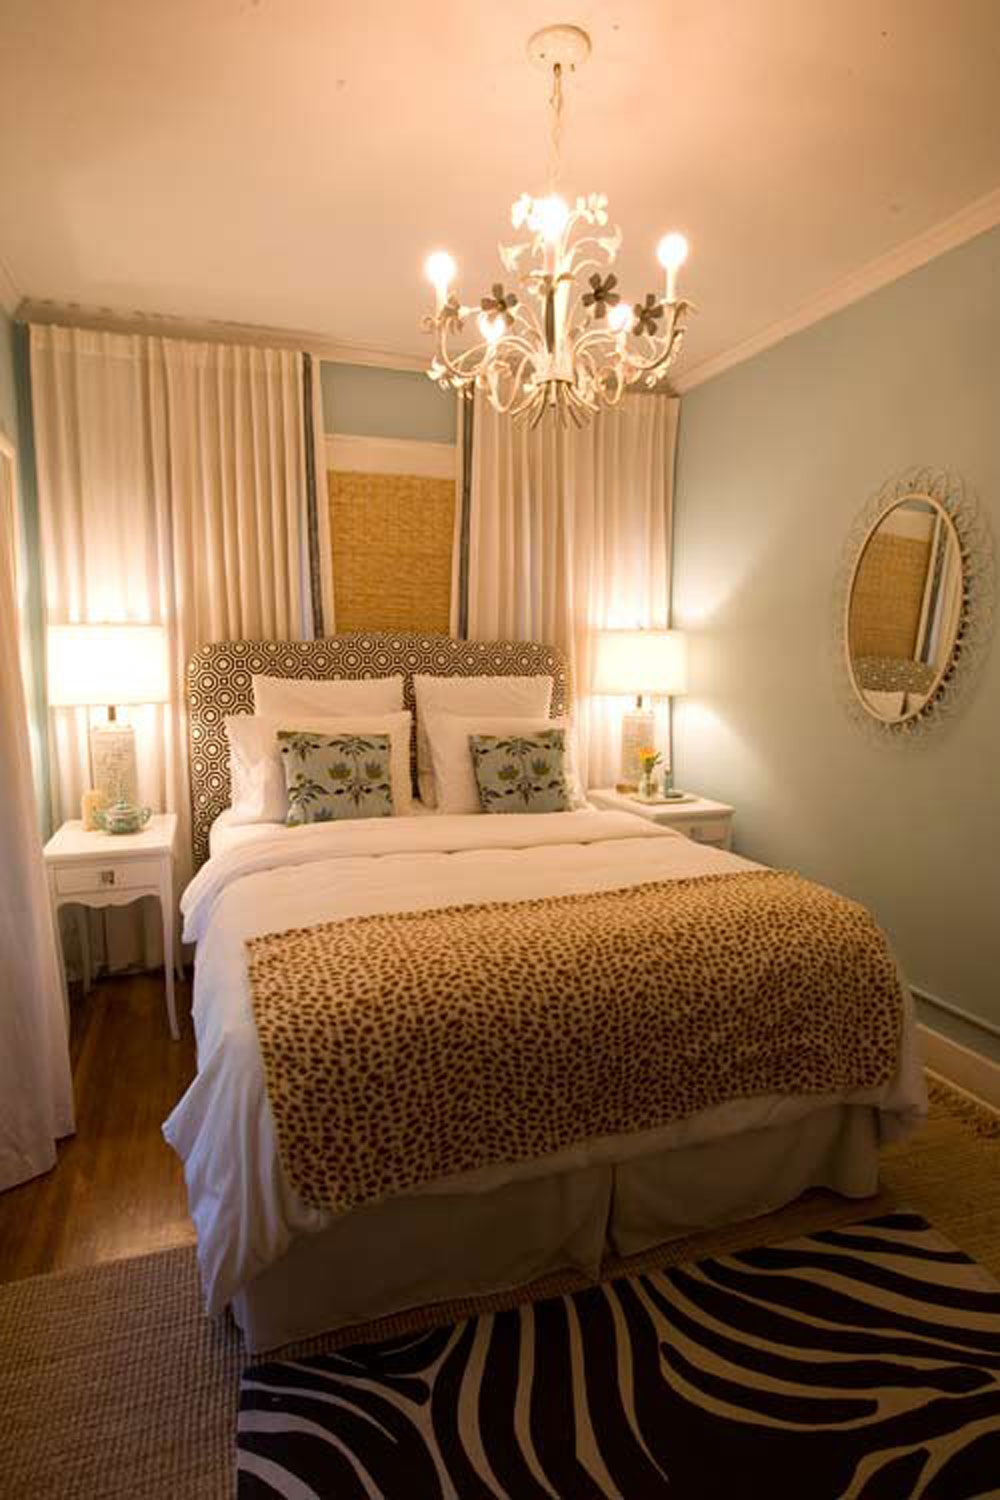 Small Bedroom Decor Design Tips For Decorating A Small Bedroom On A Budget